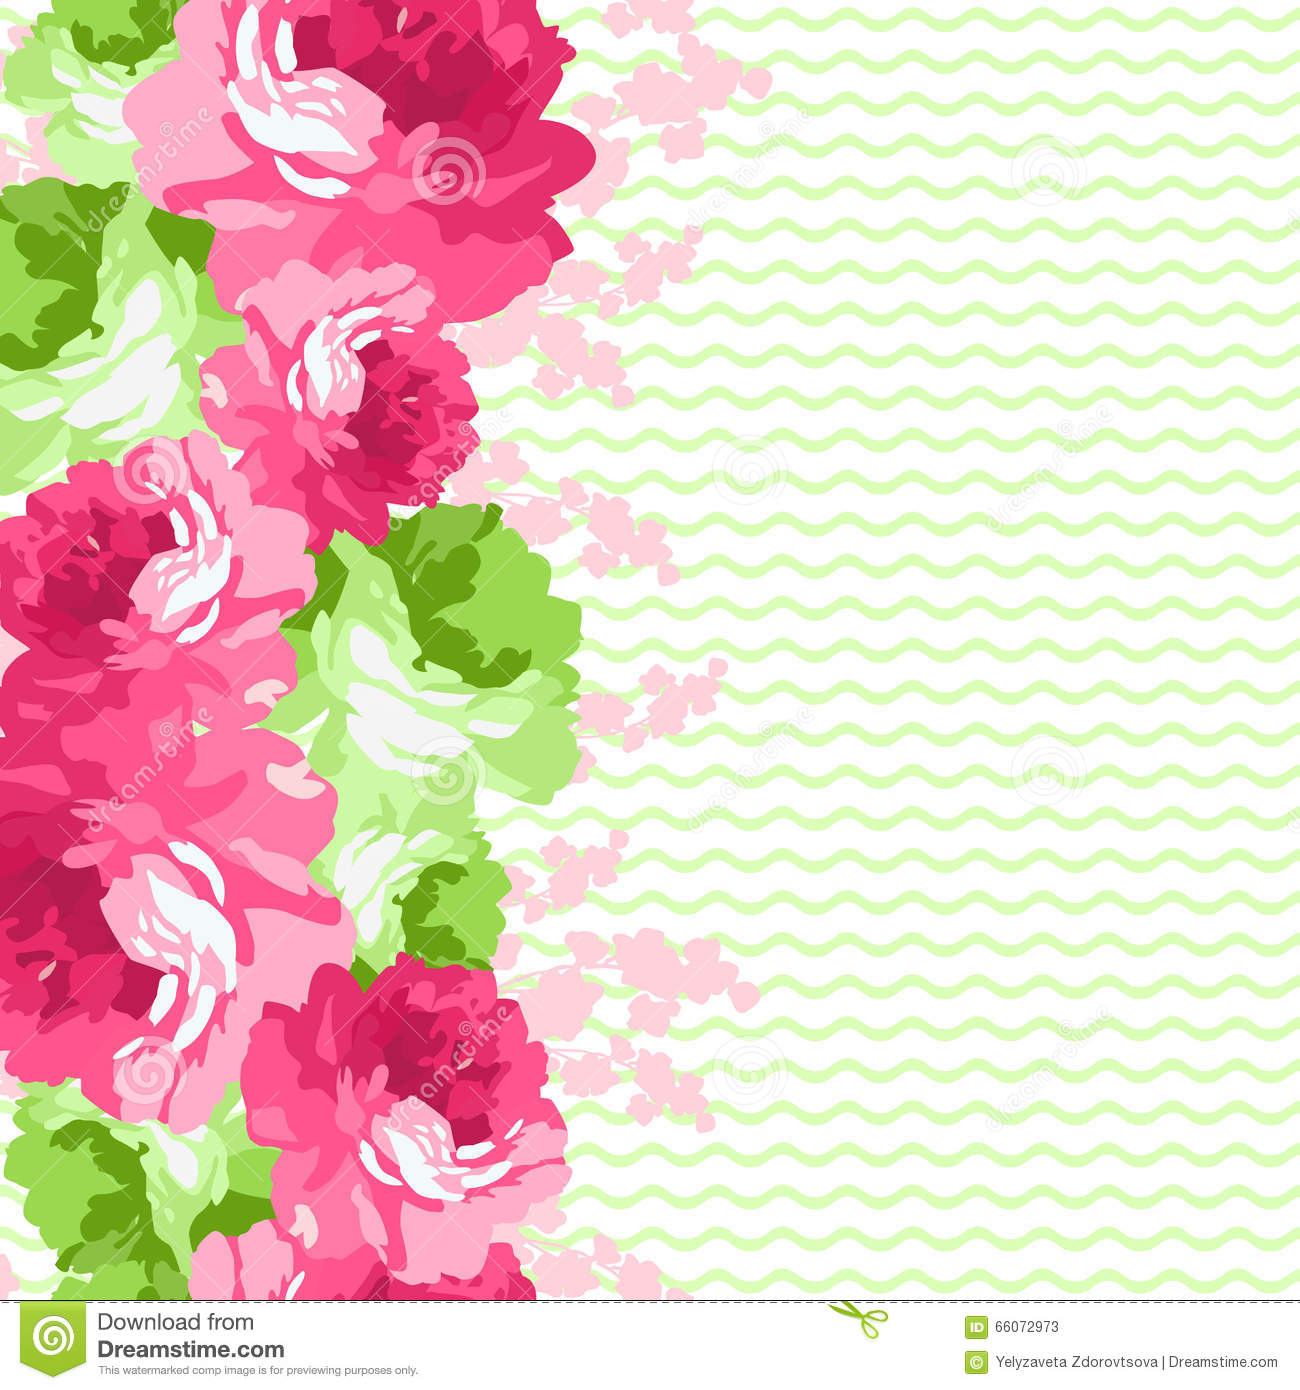 Seamless Floral Border With Pink Roses Stock Vector ...